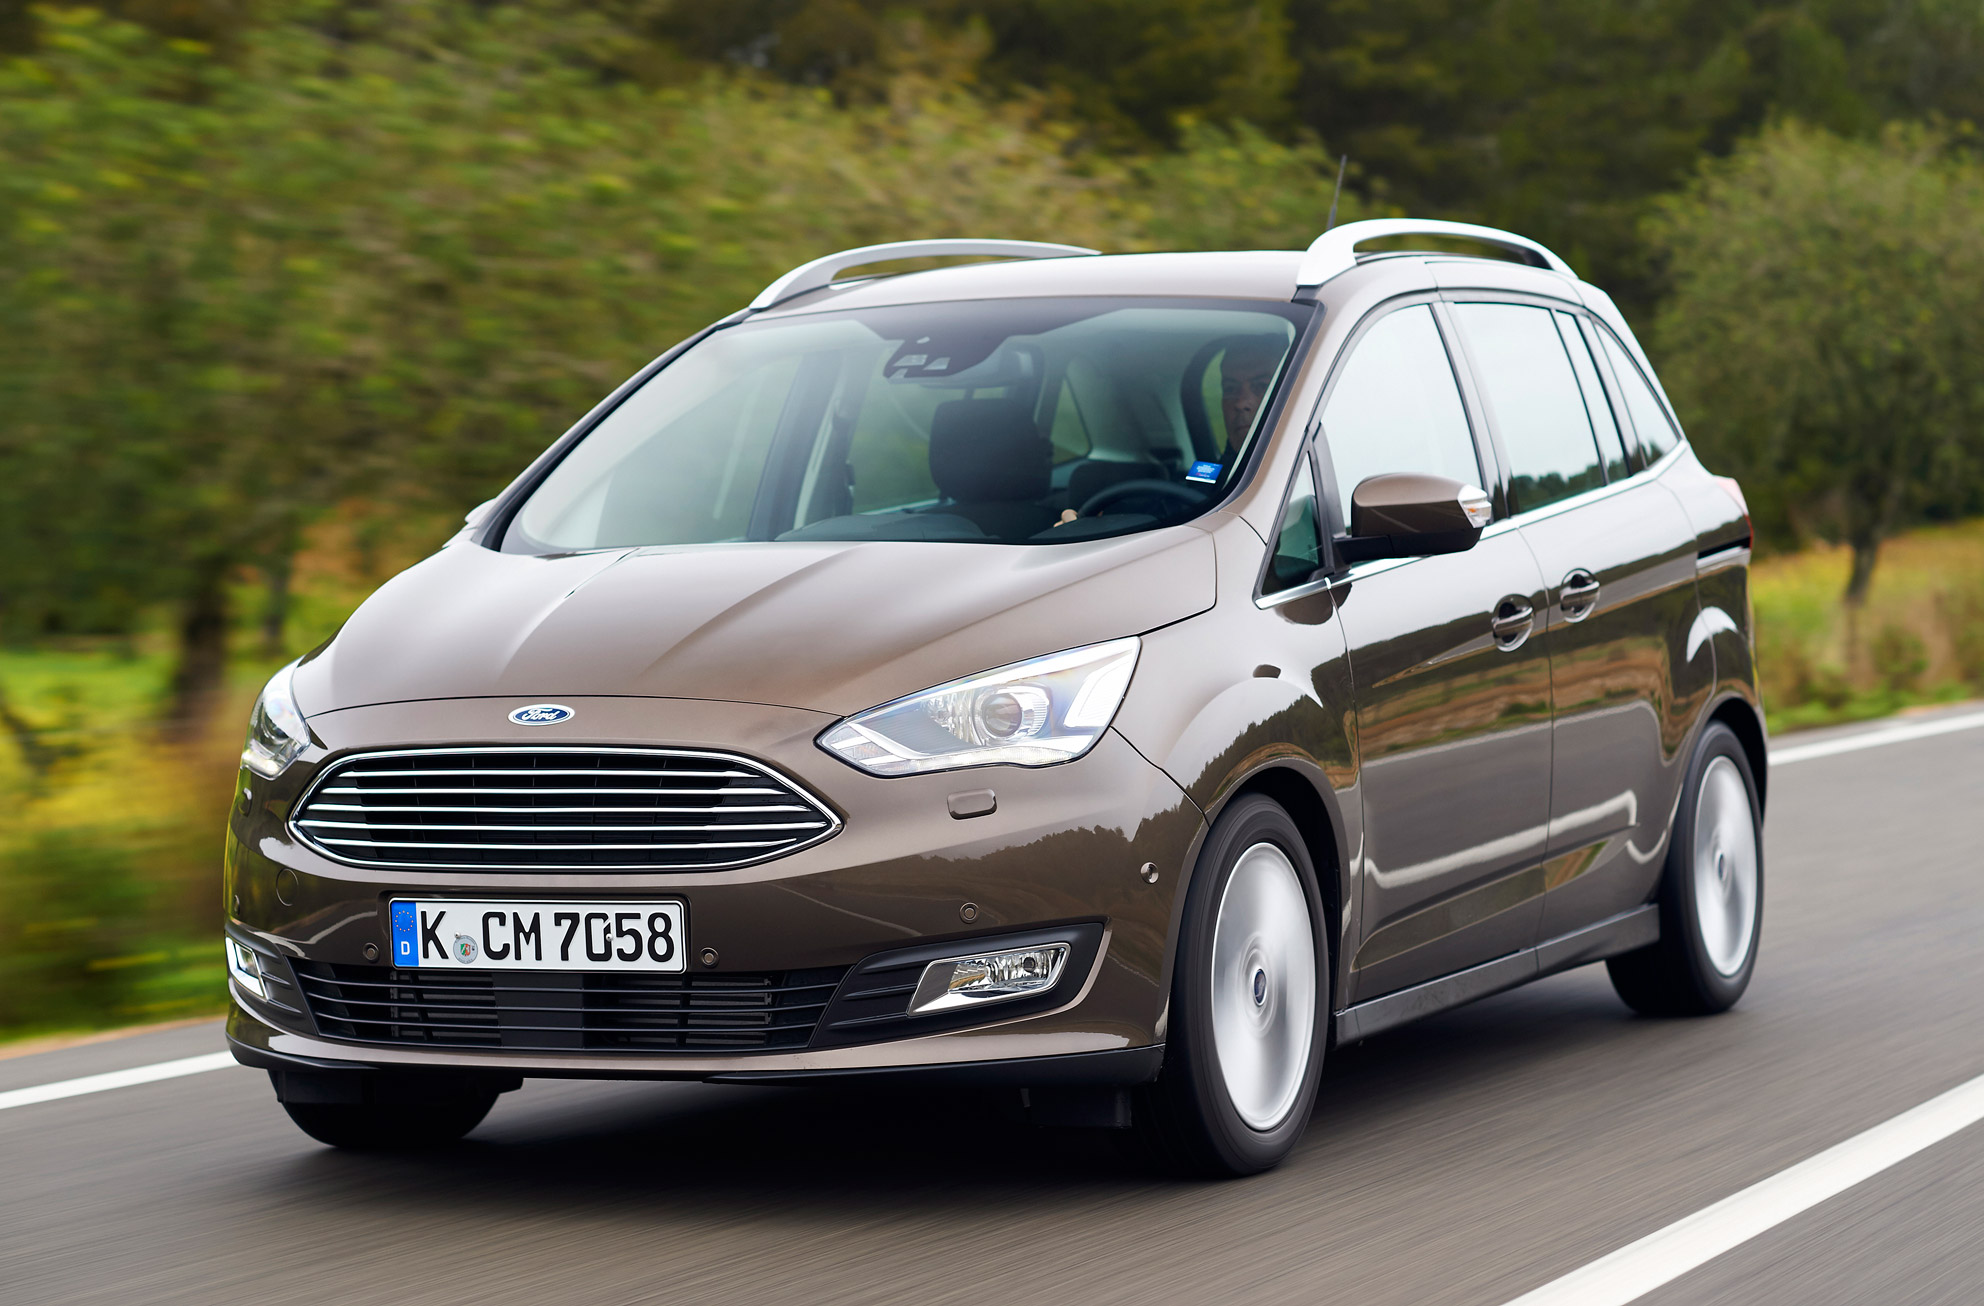 Ford updates the popular seven seat Grand C Maxpact MPV with a